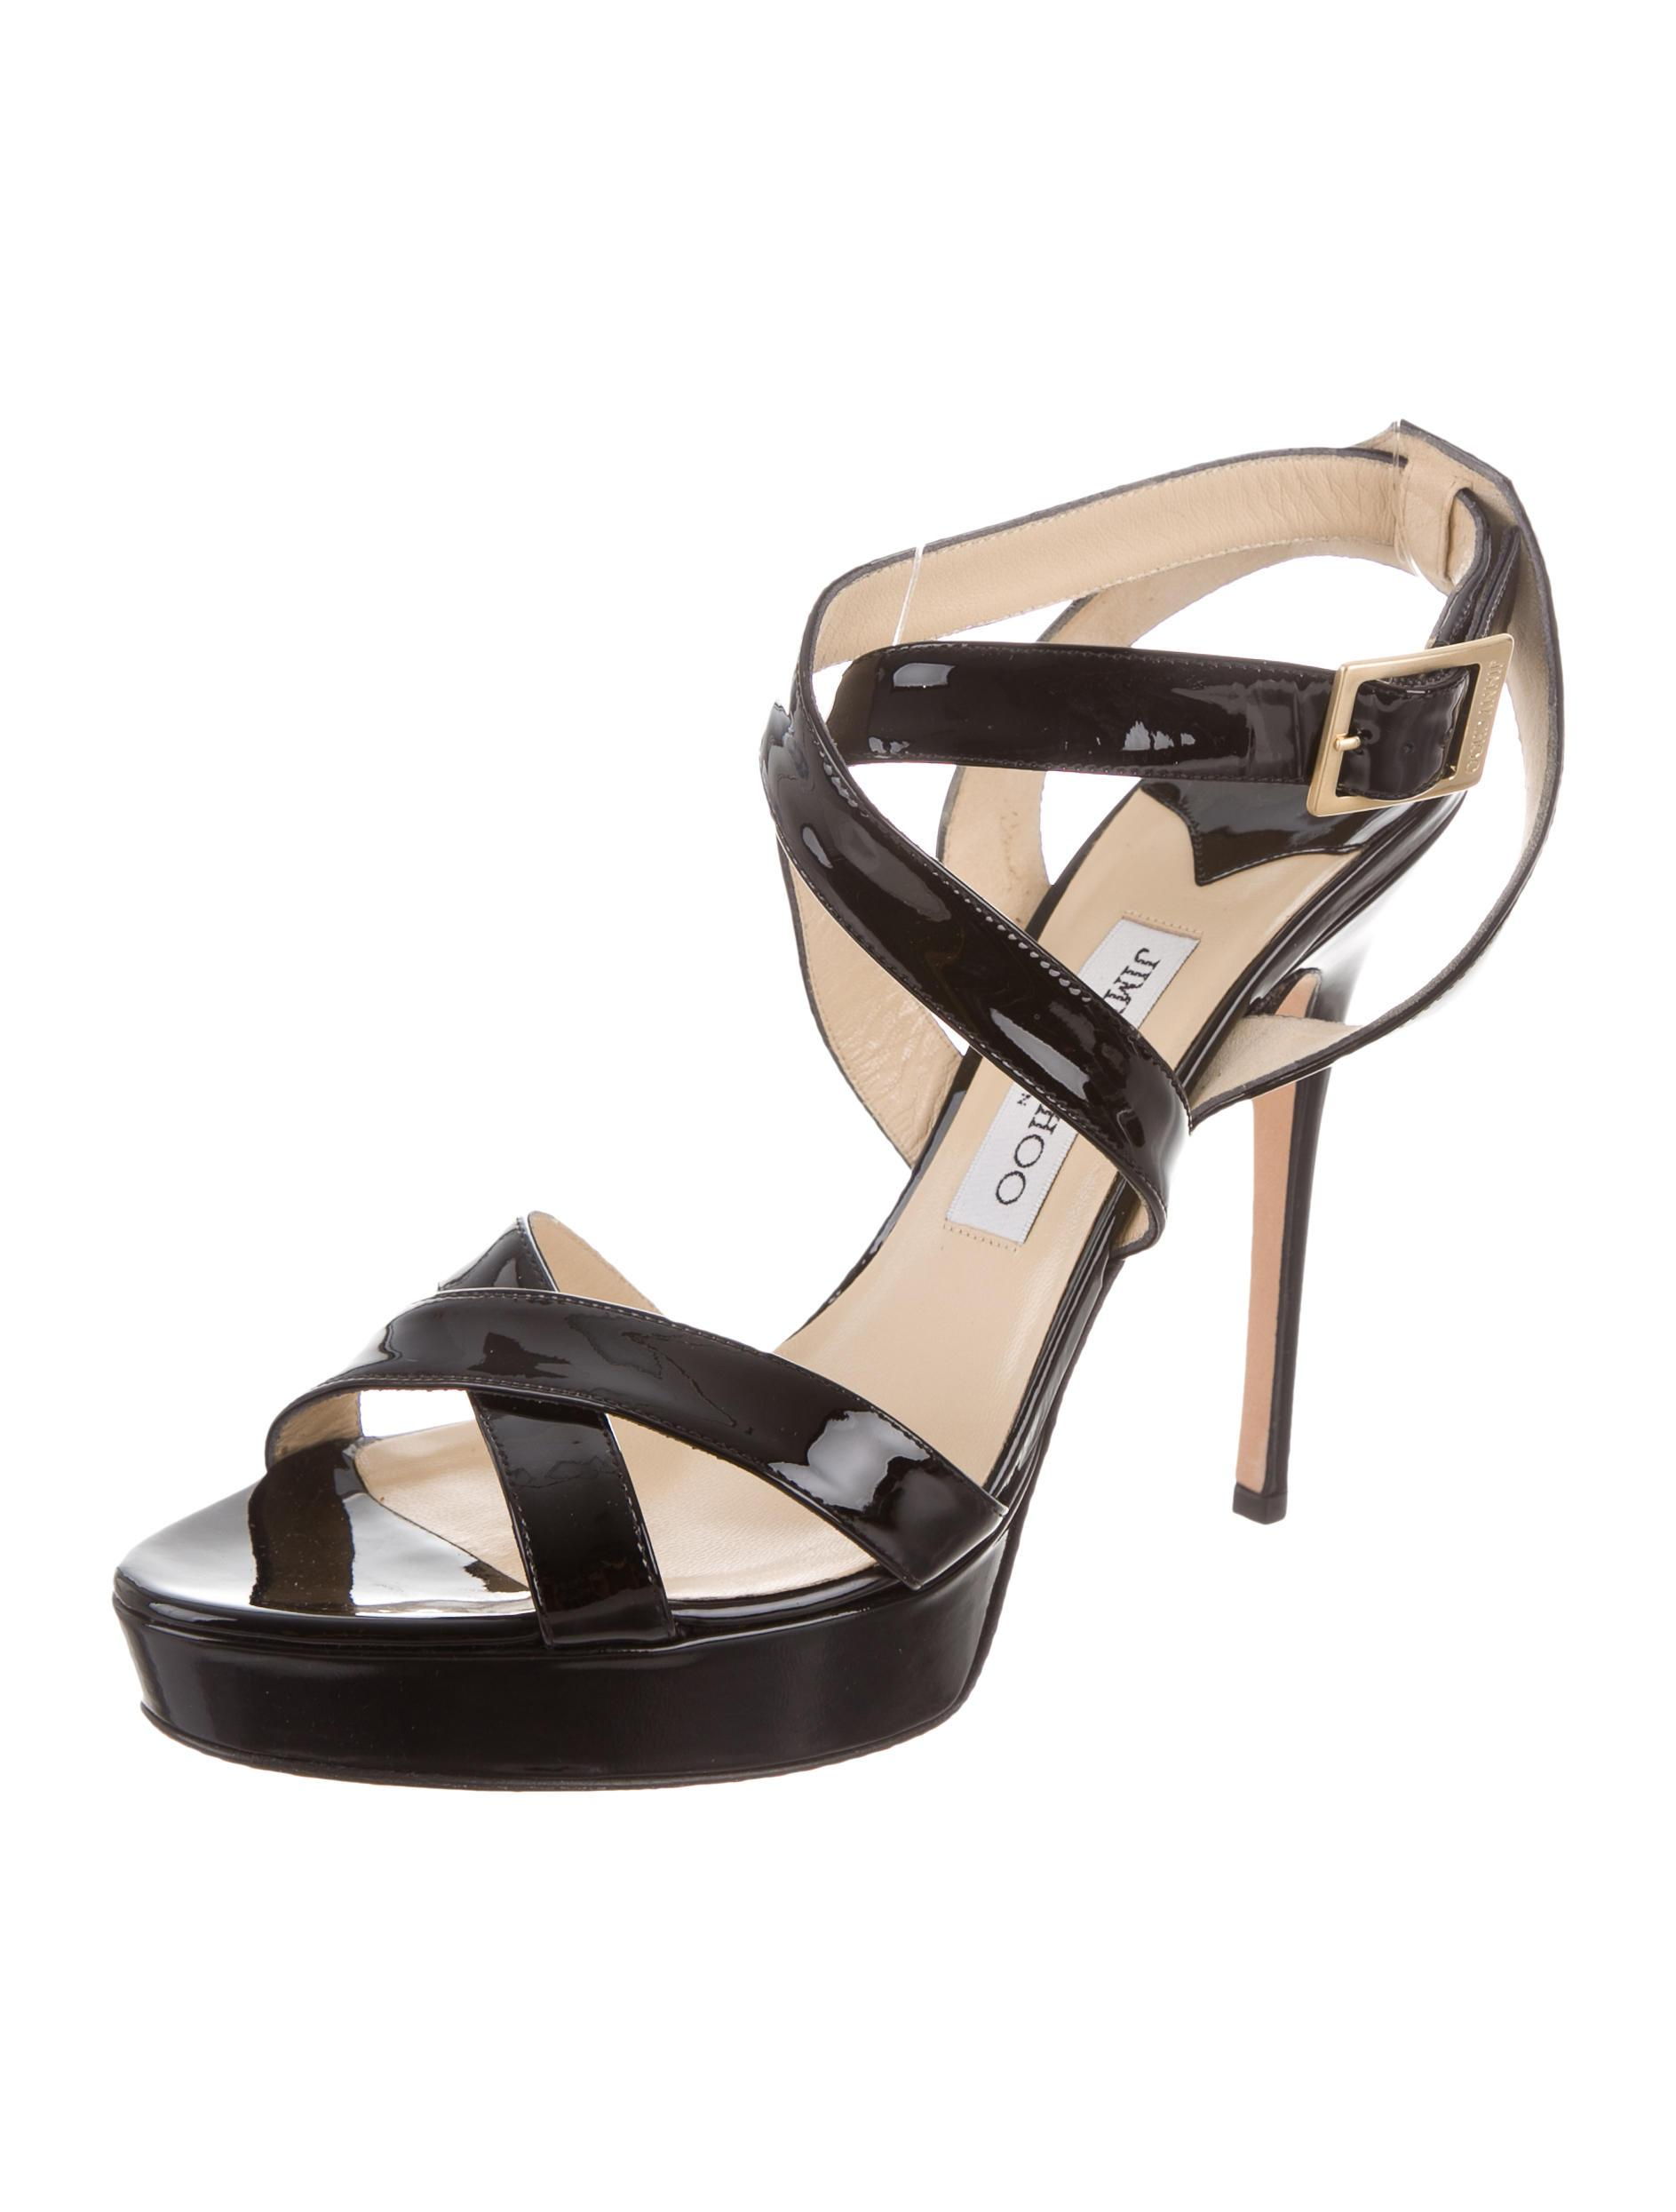 Jimmy Choo Multistrap Platform Wedges 100% authentic for sale discount visit buy cheap footlocker finishline cheap sale excellent extremely online aPtLolmV